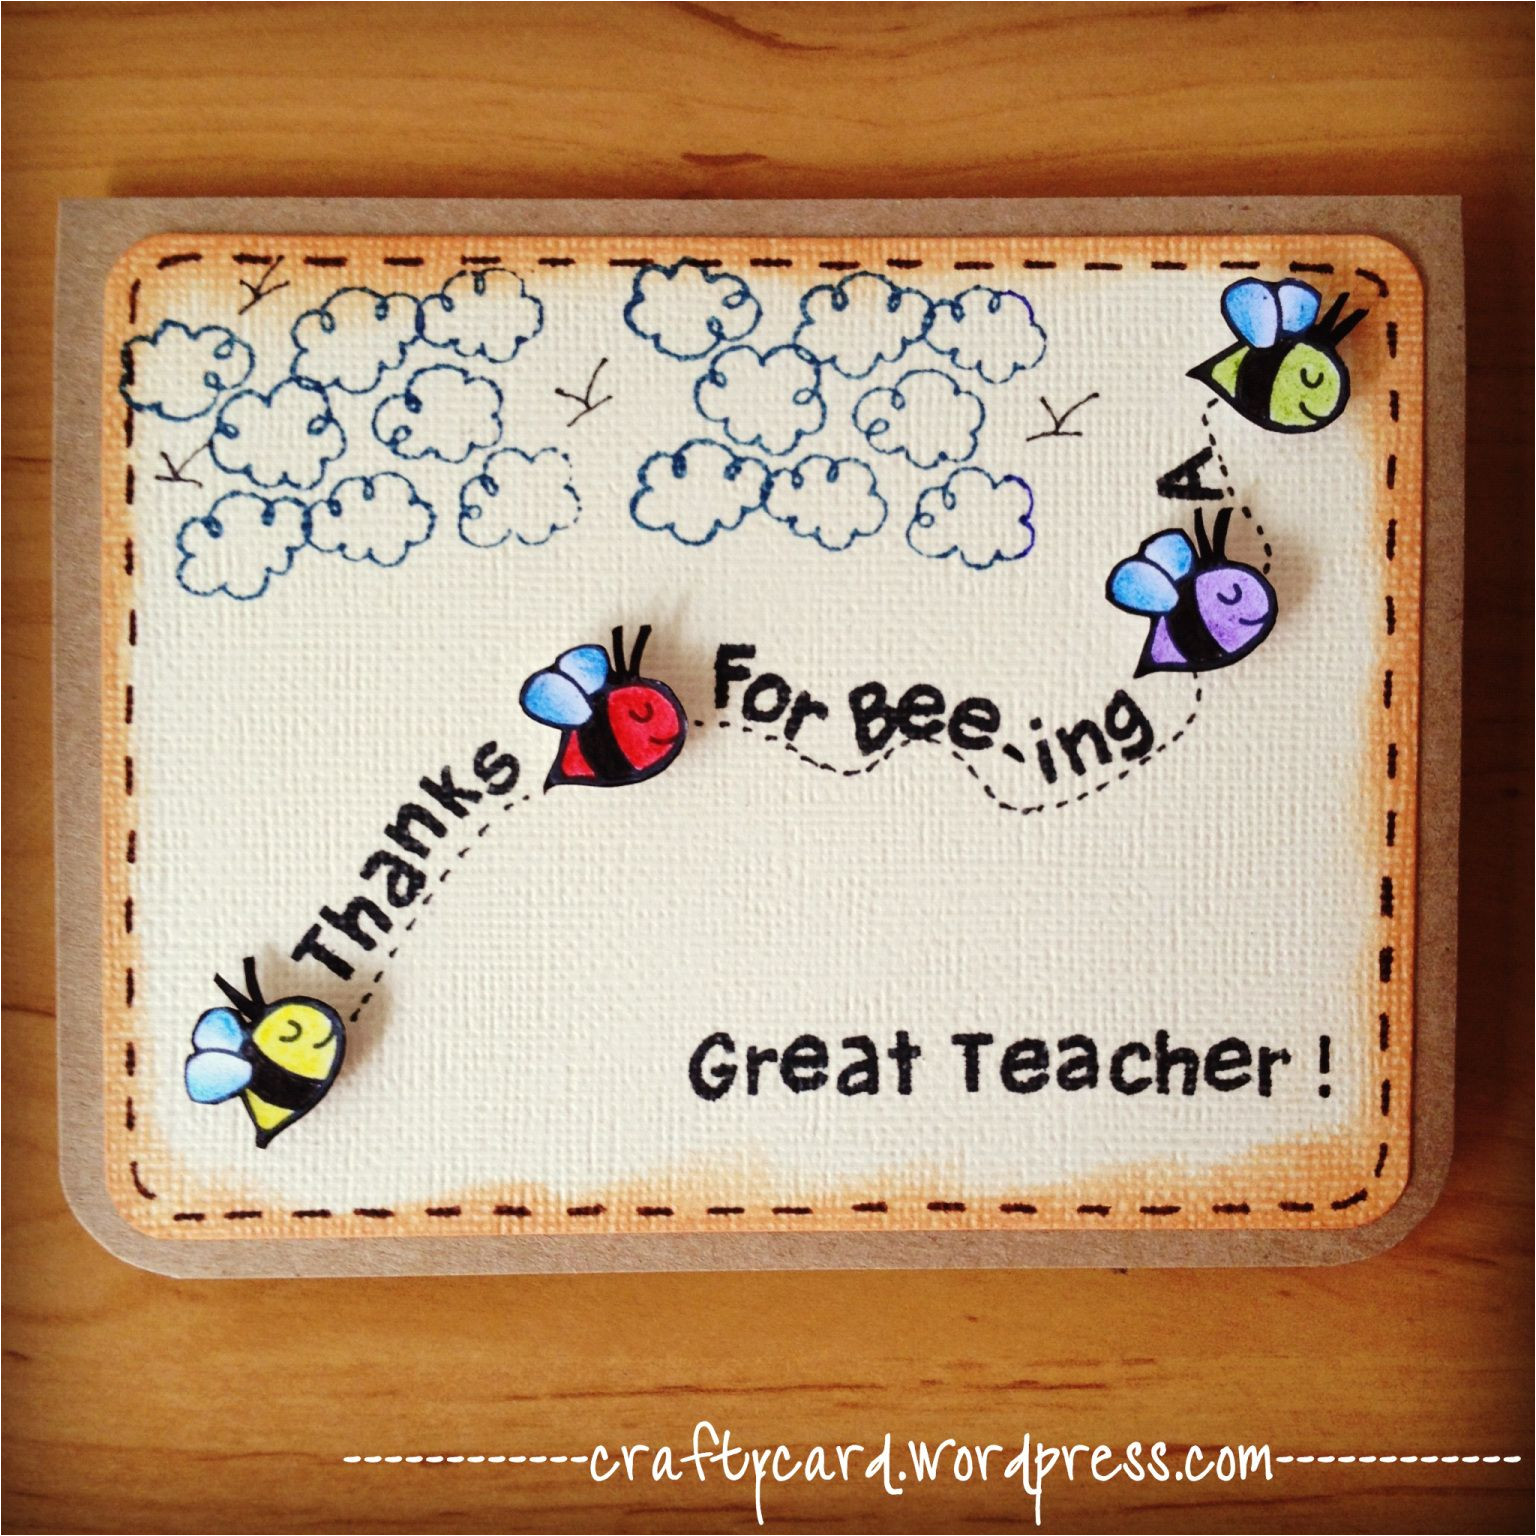 Best Design for Teachers Day Card M203 Thanks for Bee Ing A Great Teacher with Images